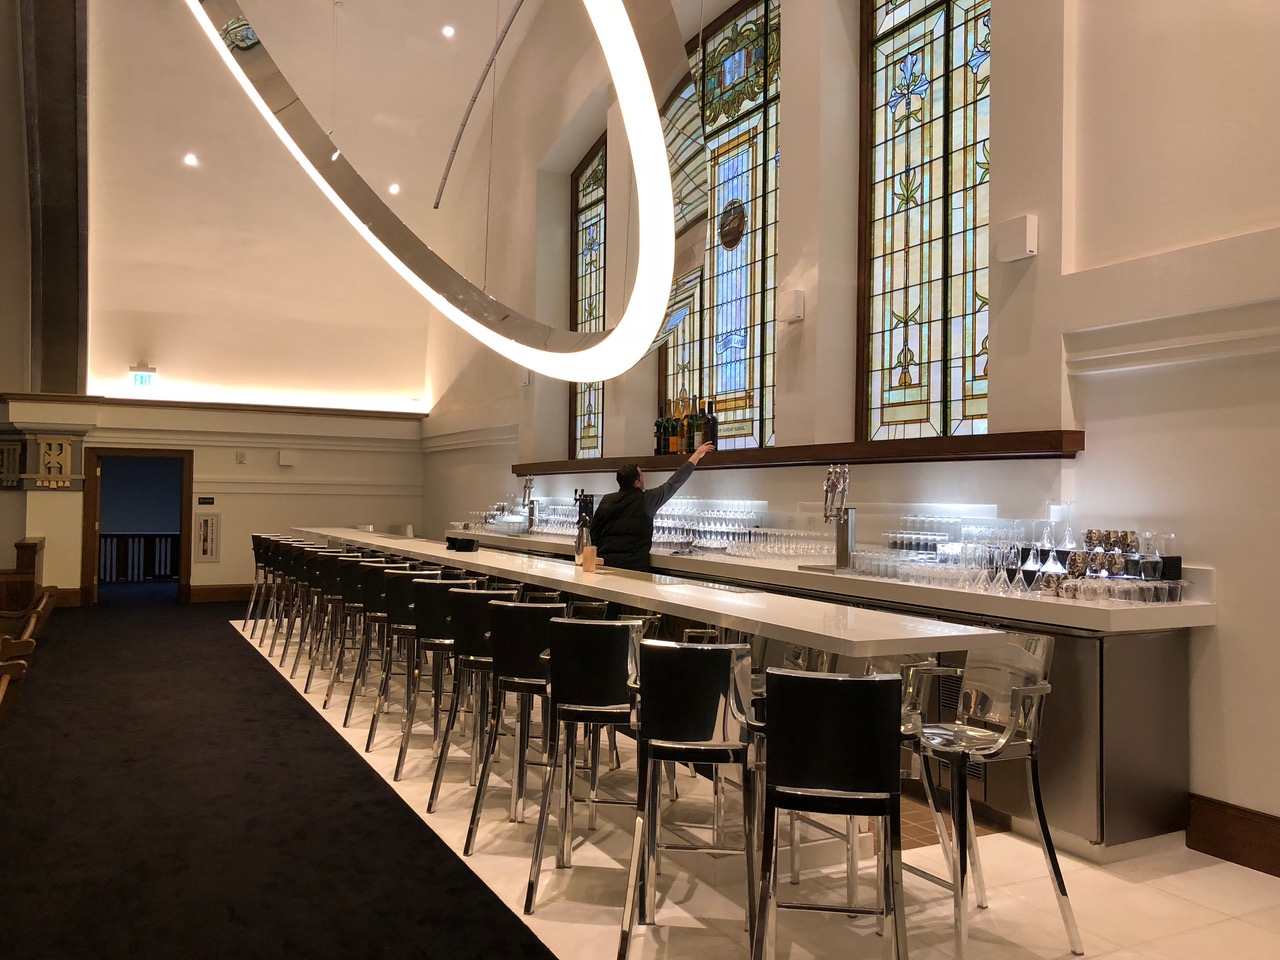 The bar at the Sanctuary. (Photo by Clair Enlow)